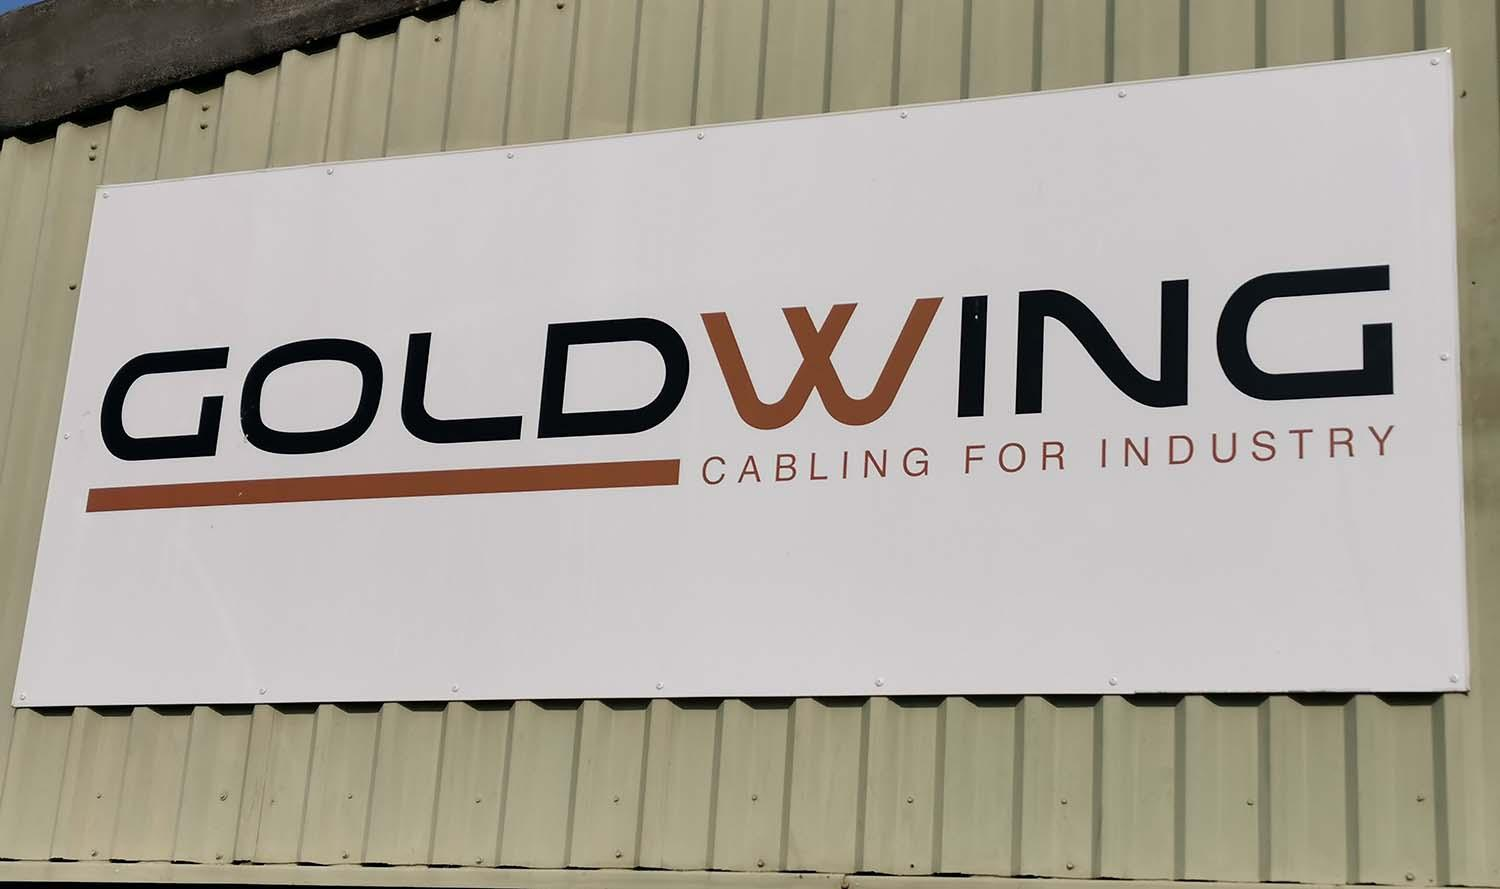 goldwing-cable-sign.jpg